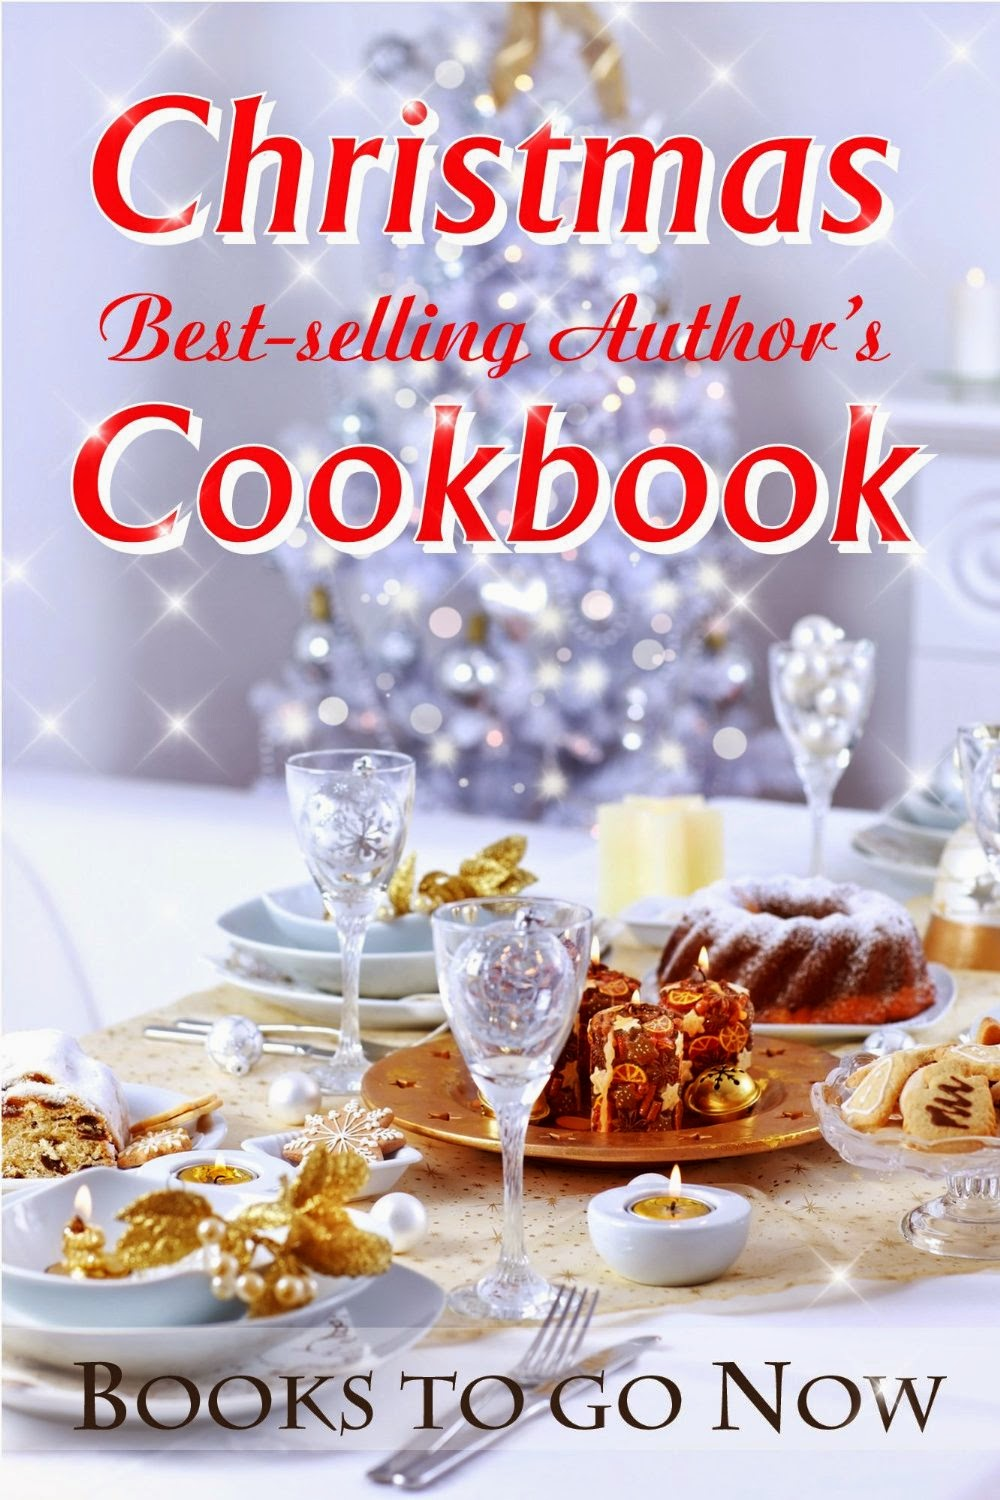 Christmas Best-Selling Author's Cookbook